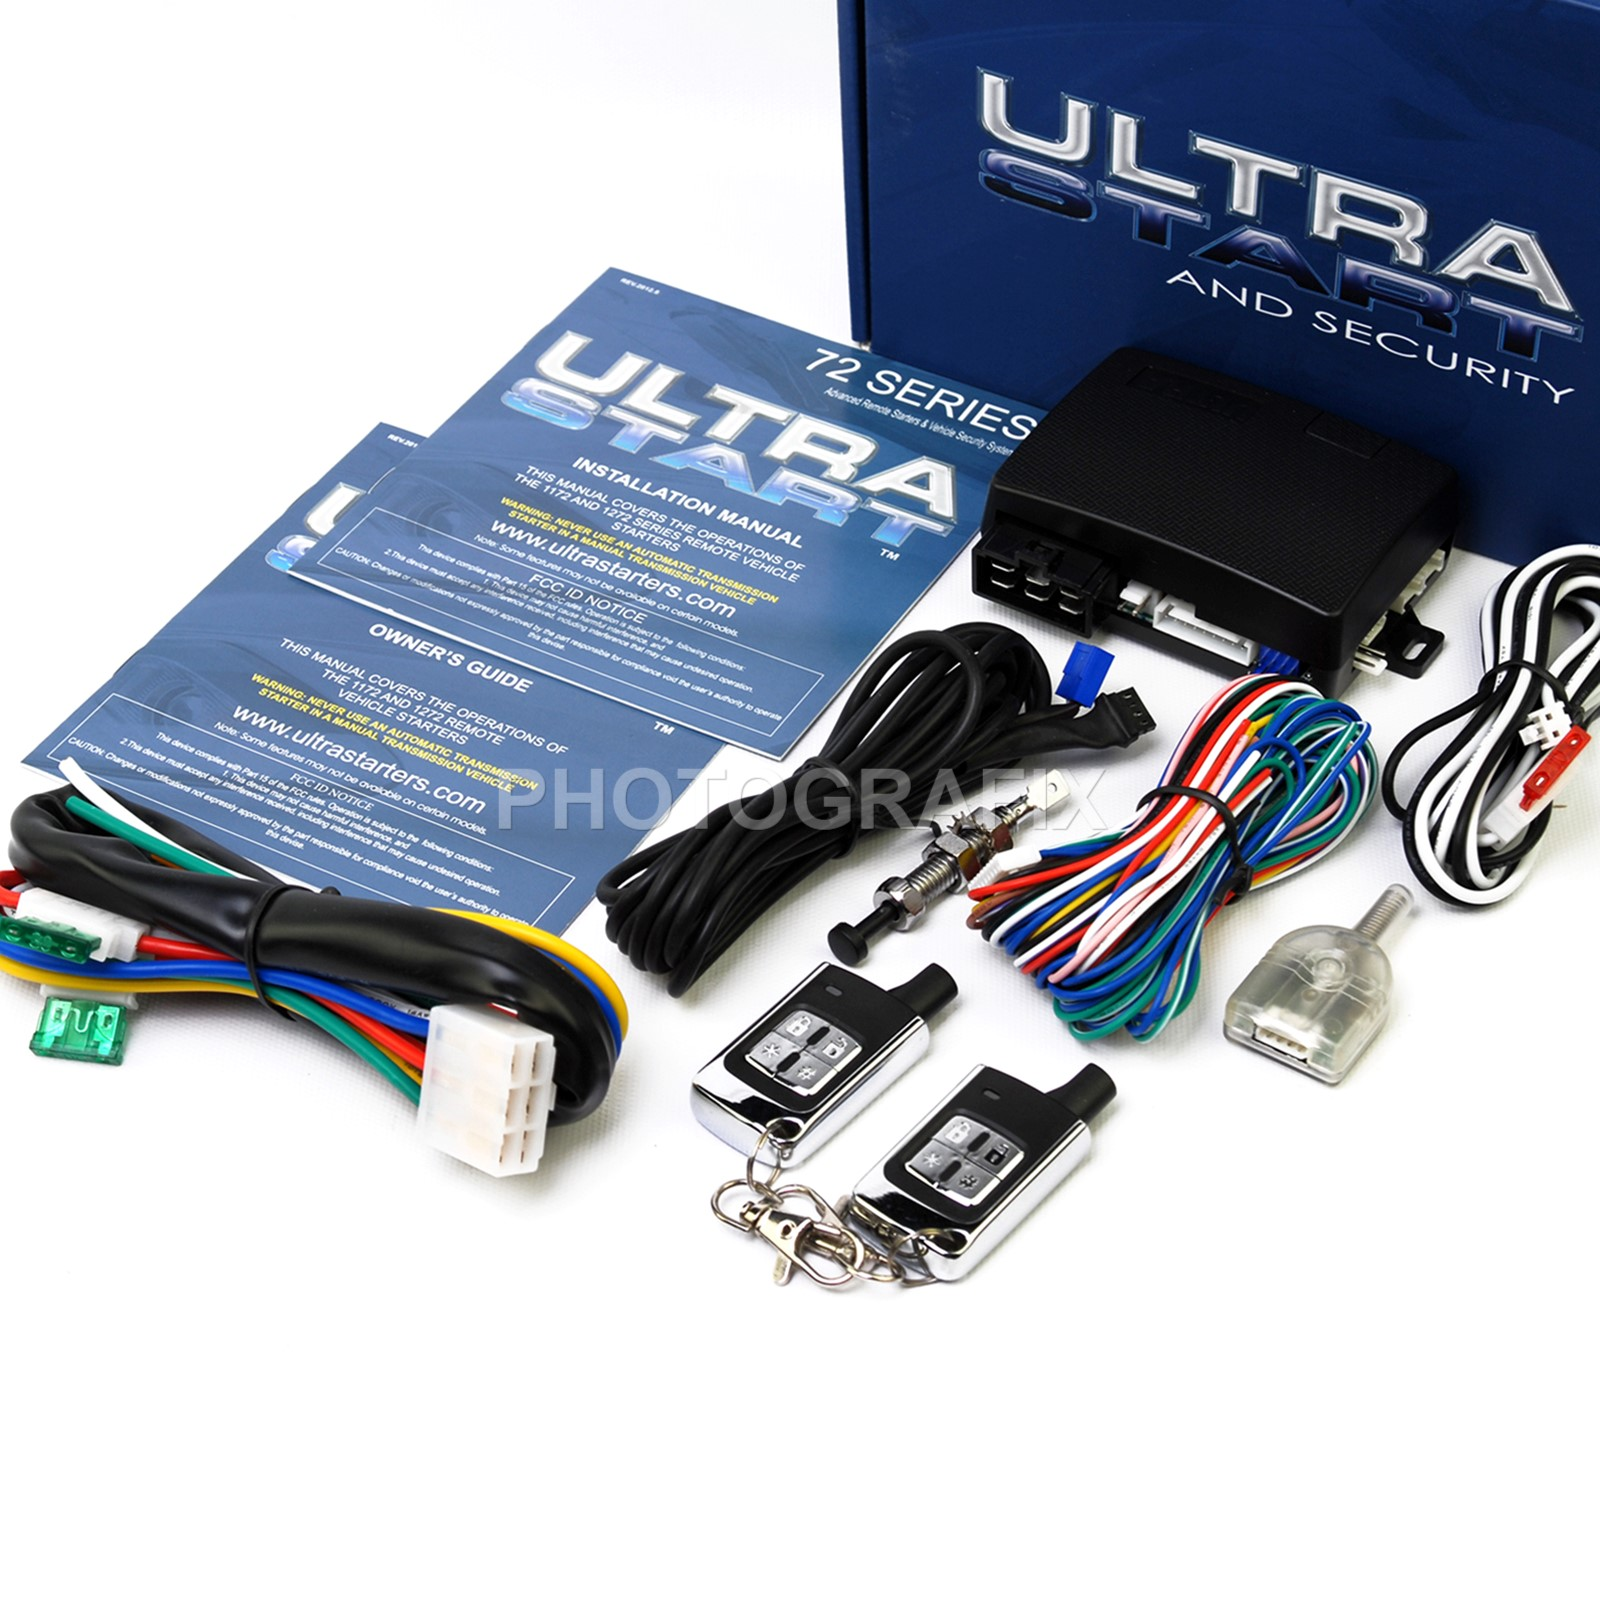 ultra start 1272 xr pro keyless auto remote car start starter rh walmart com Droid Ultra Guide North Face Ultra Guide Shoes